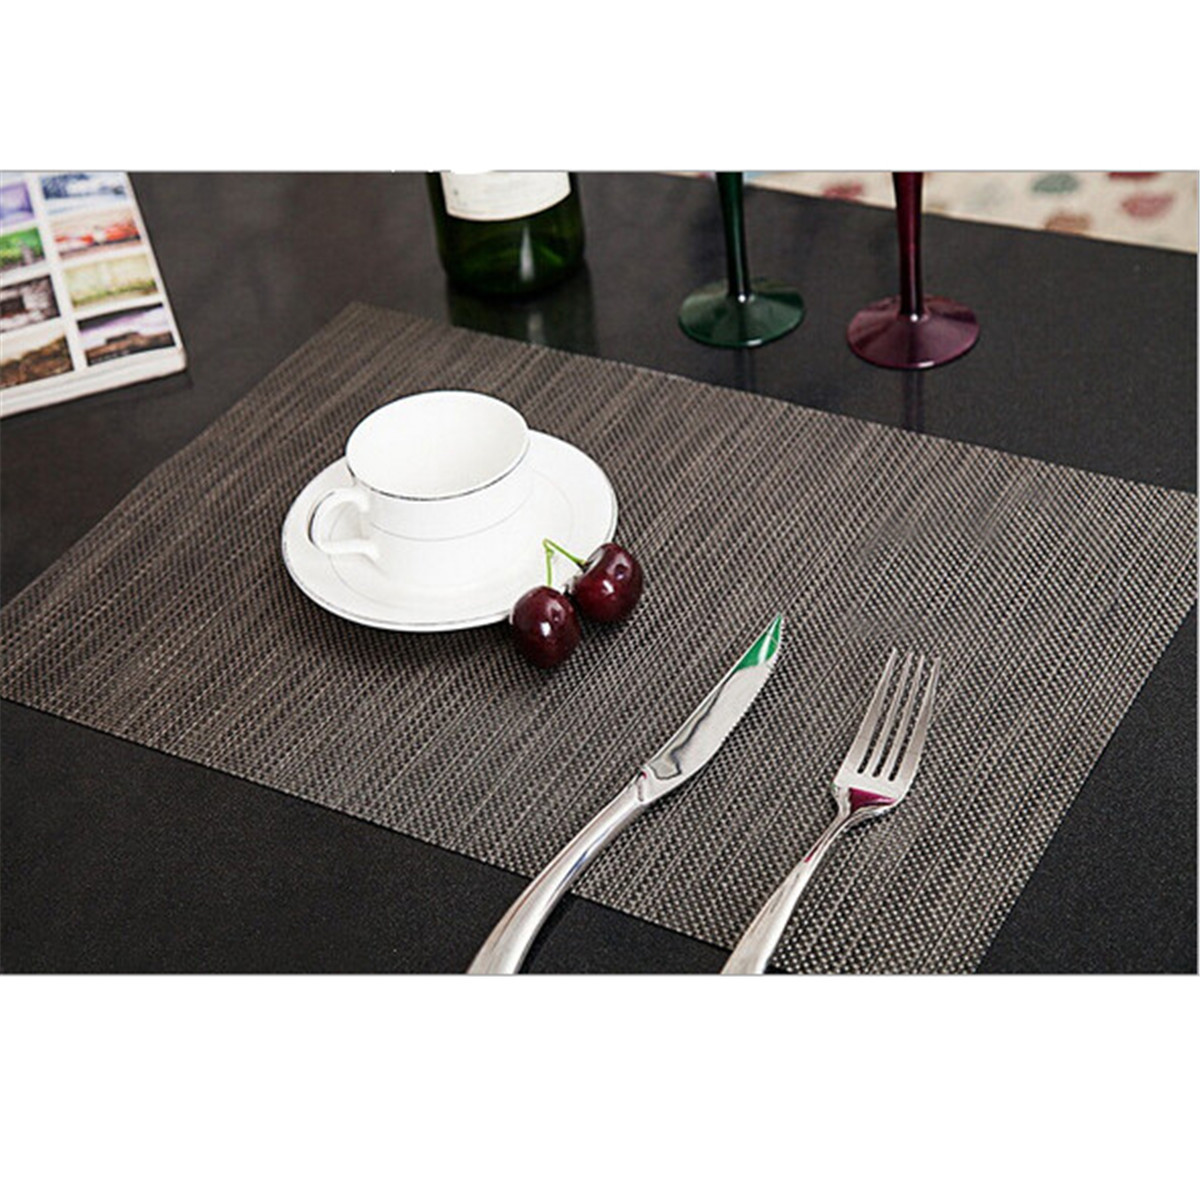 Sales Pvc Quick Drying Placemats Insulation Mats Coasters